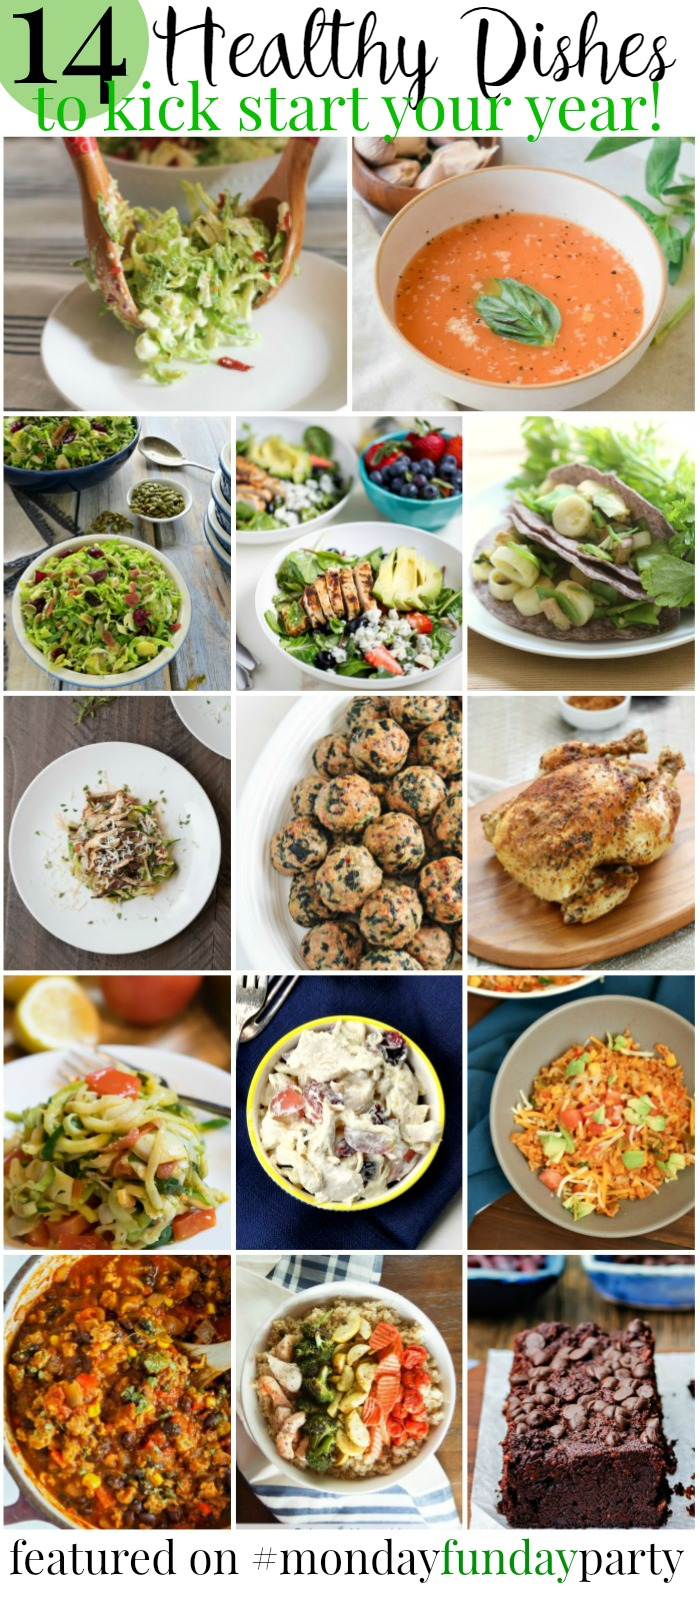 Healthy Dishes for Healthy Eating Monday Funday Liink Party